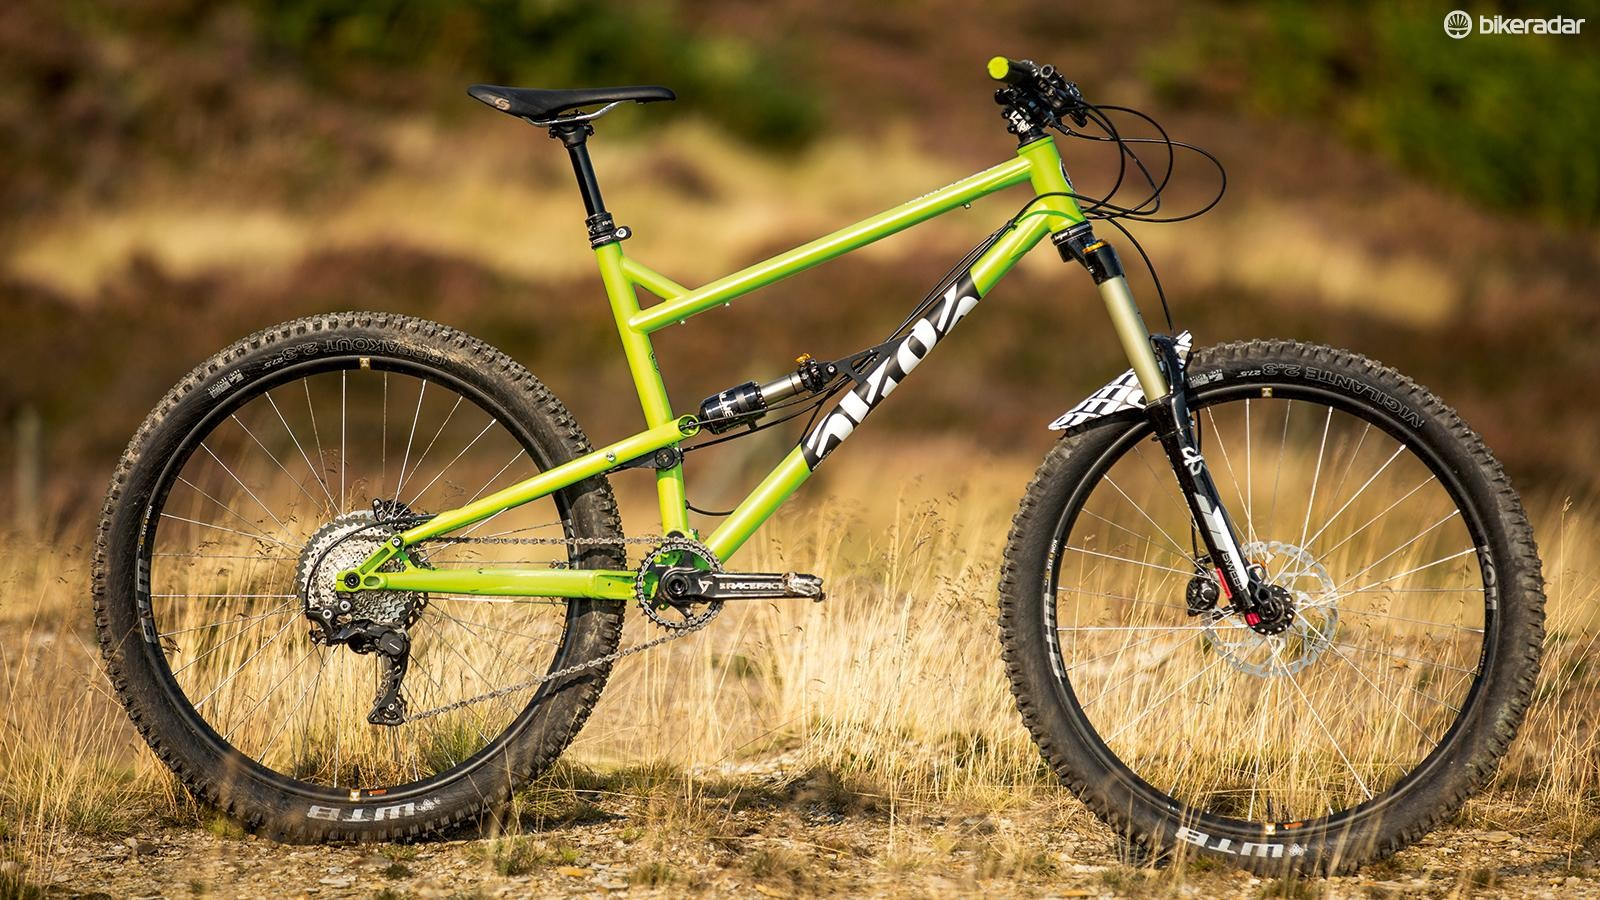 The Reynolds 853 steel mainframe includes Cotic's signature Ovalform top tube as well as a custom heat-treated seat tube to carry the 15mm linkage pivot axle